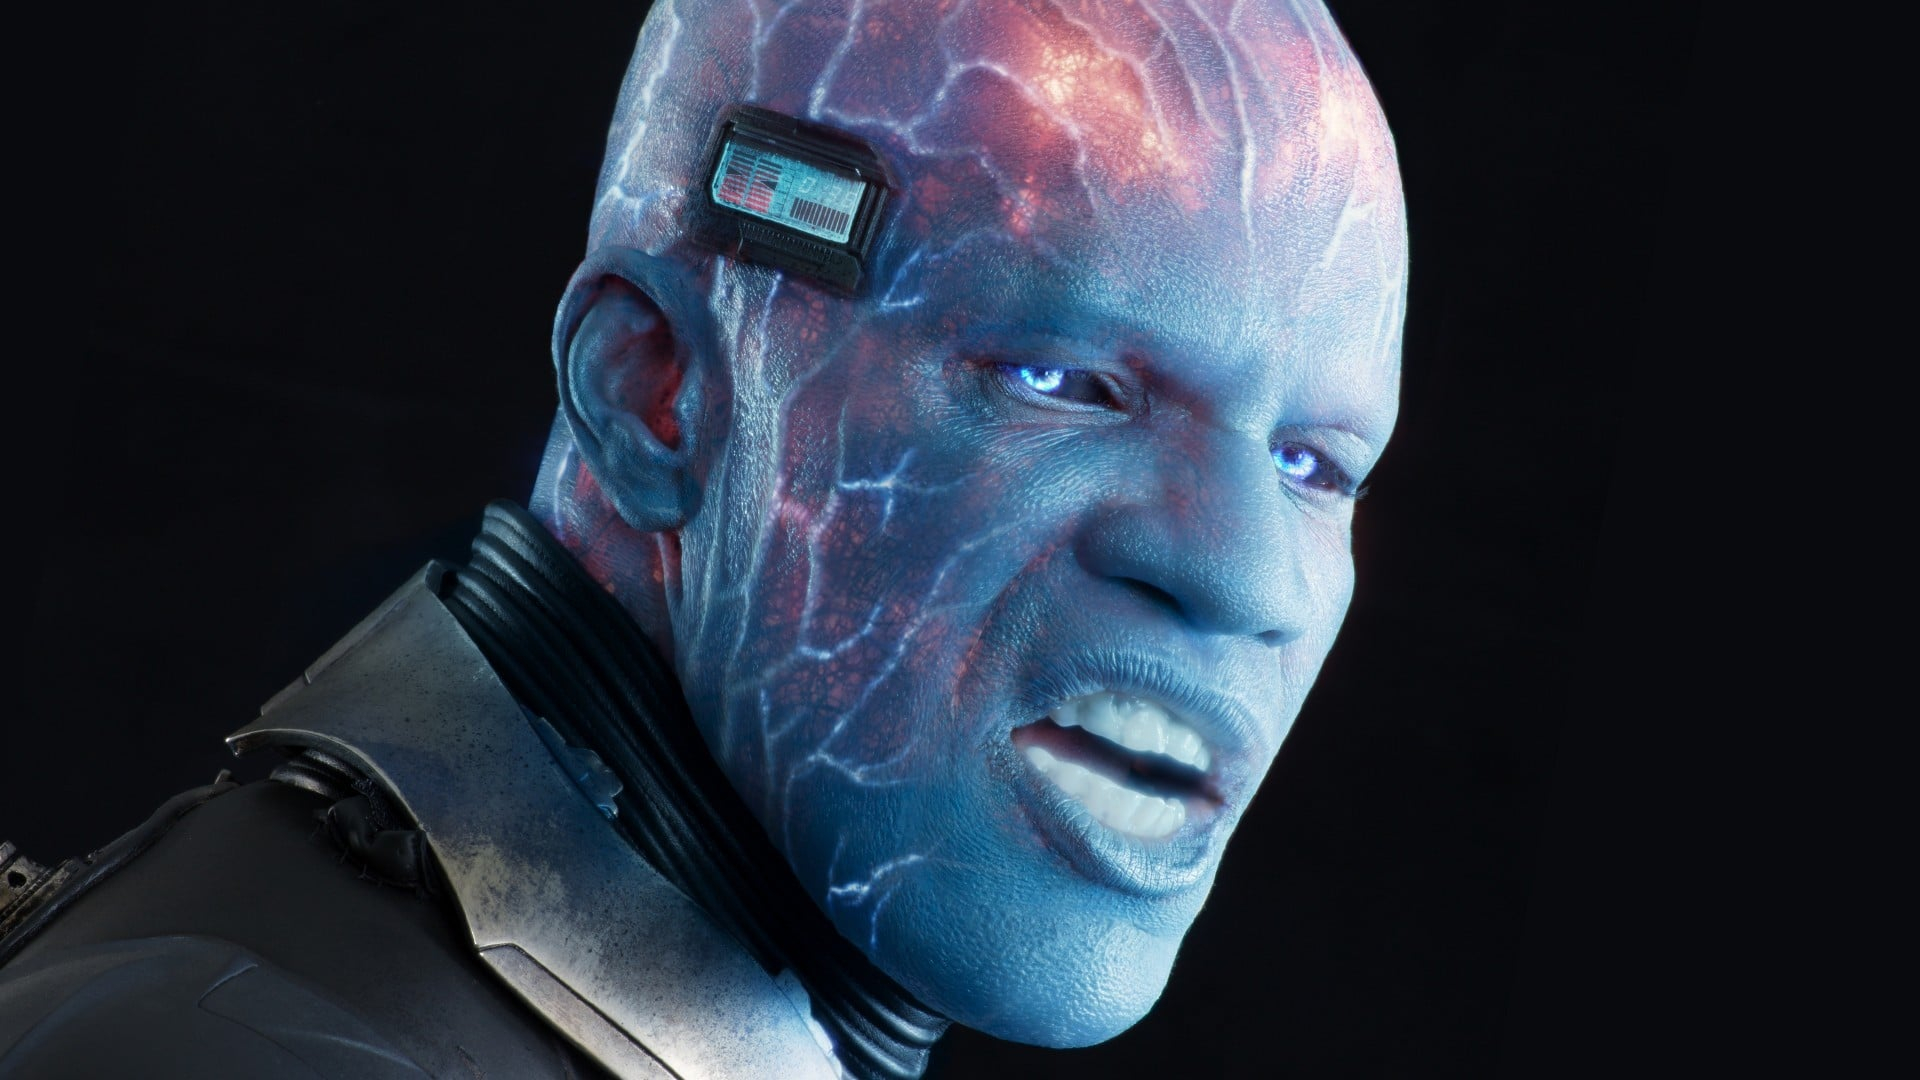 Spider-Man 3 Is Bringing Back Jamie Foxx As Electro